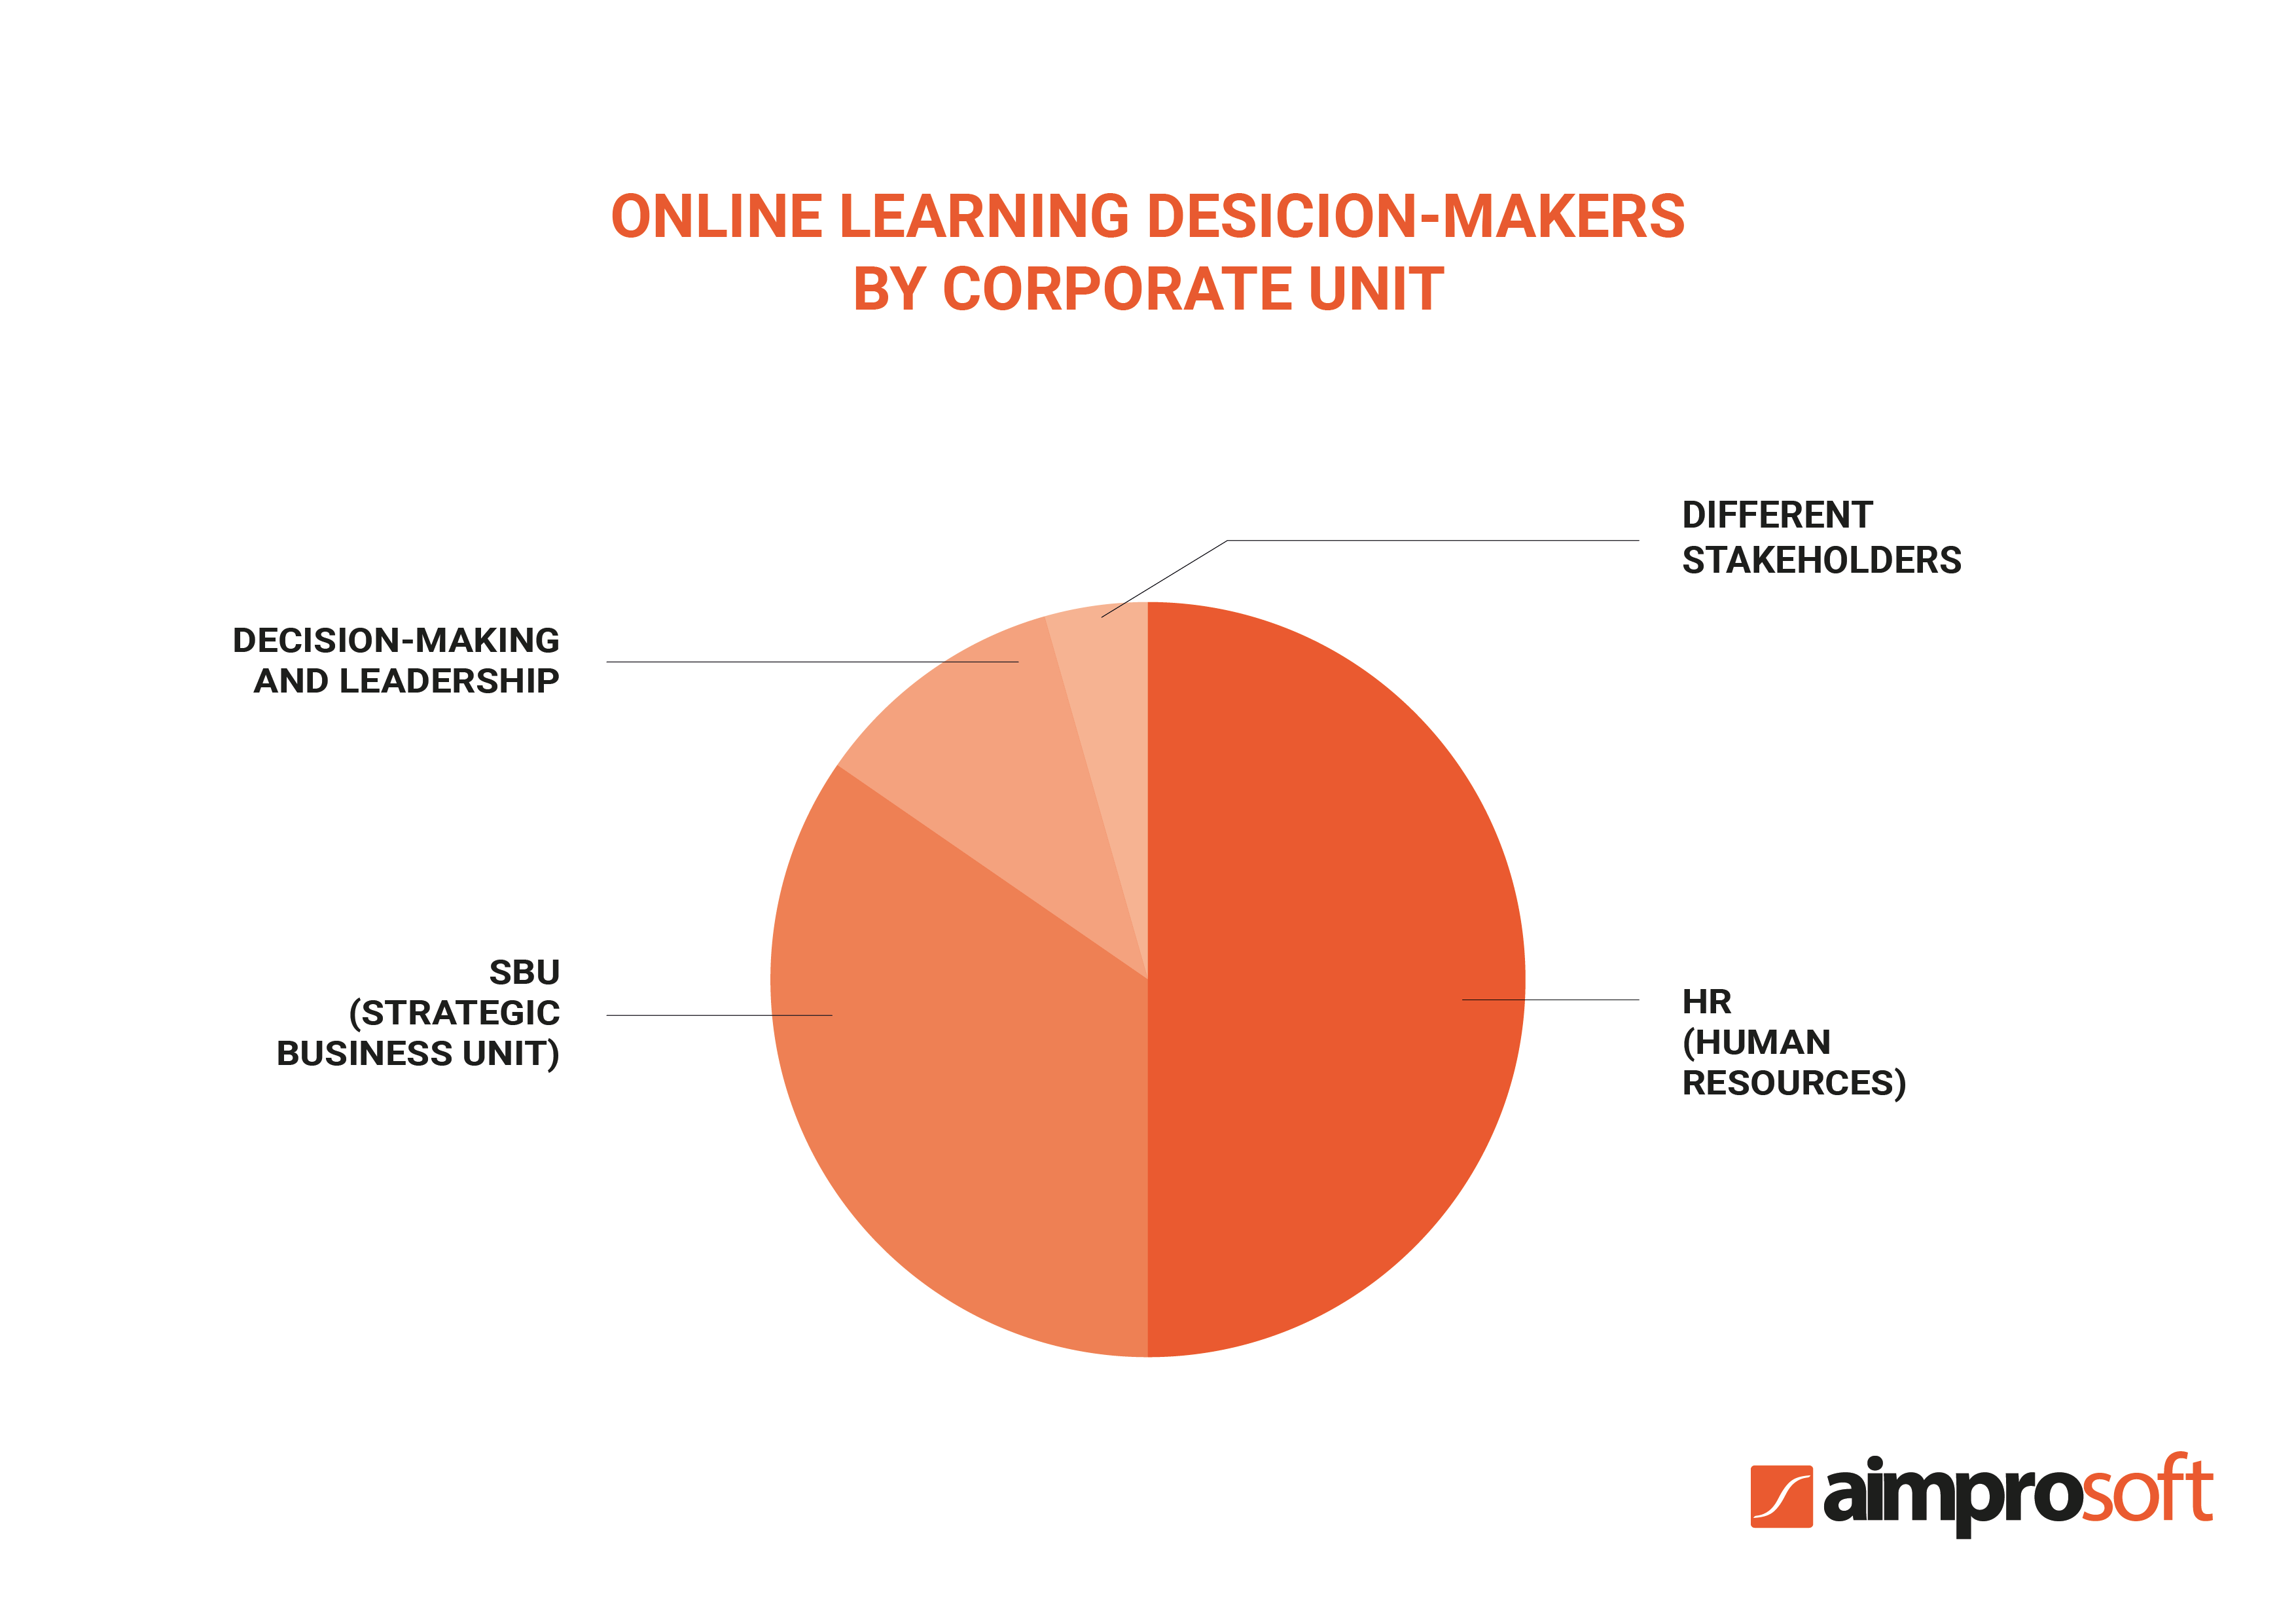 Online learning decision-makers by corporate unit